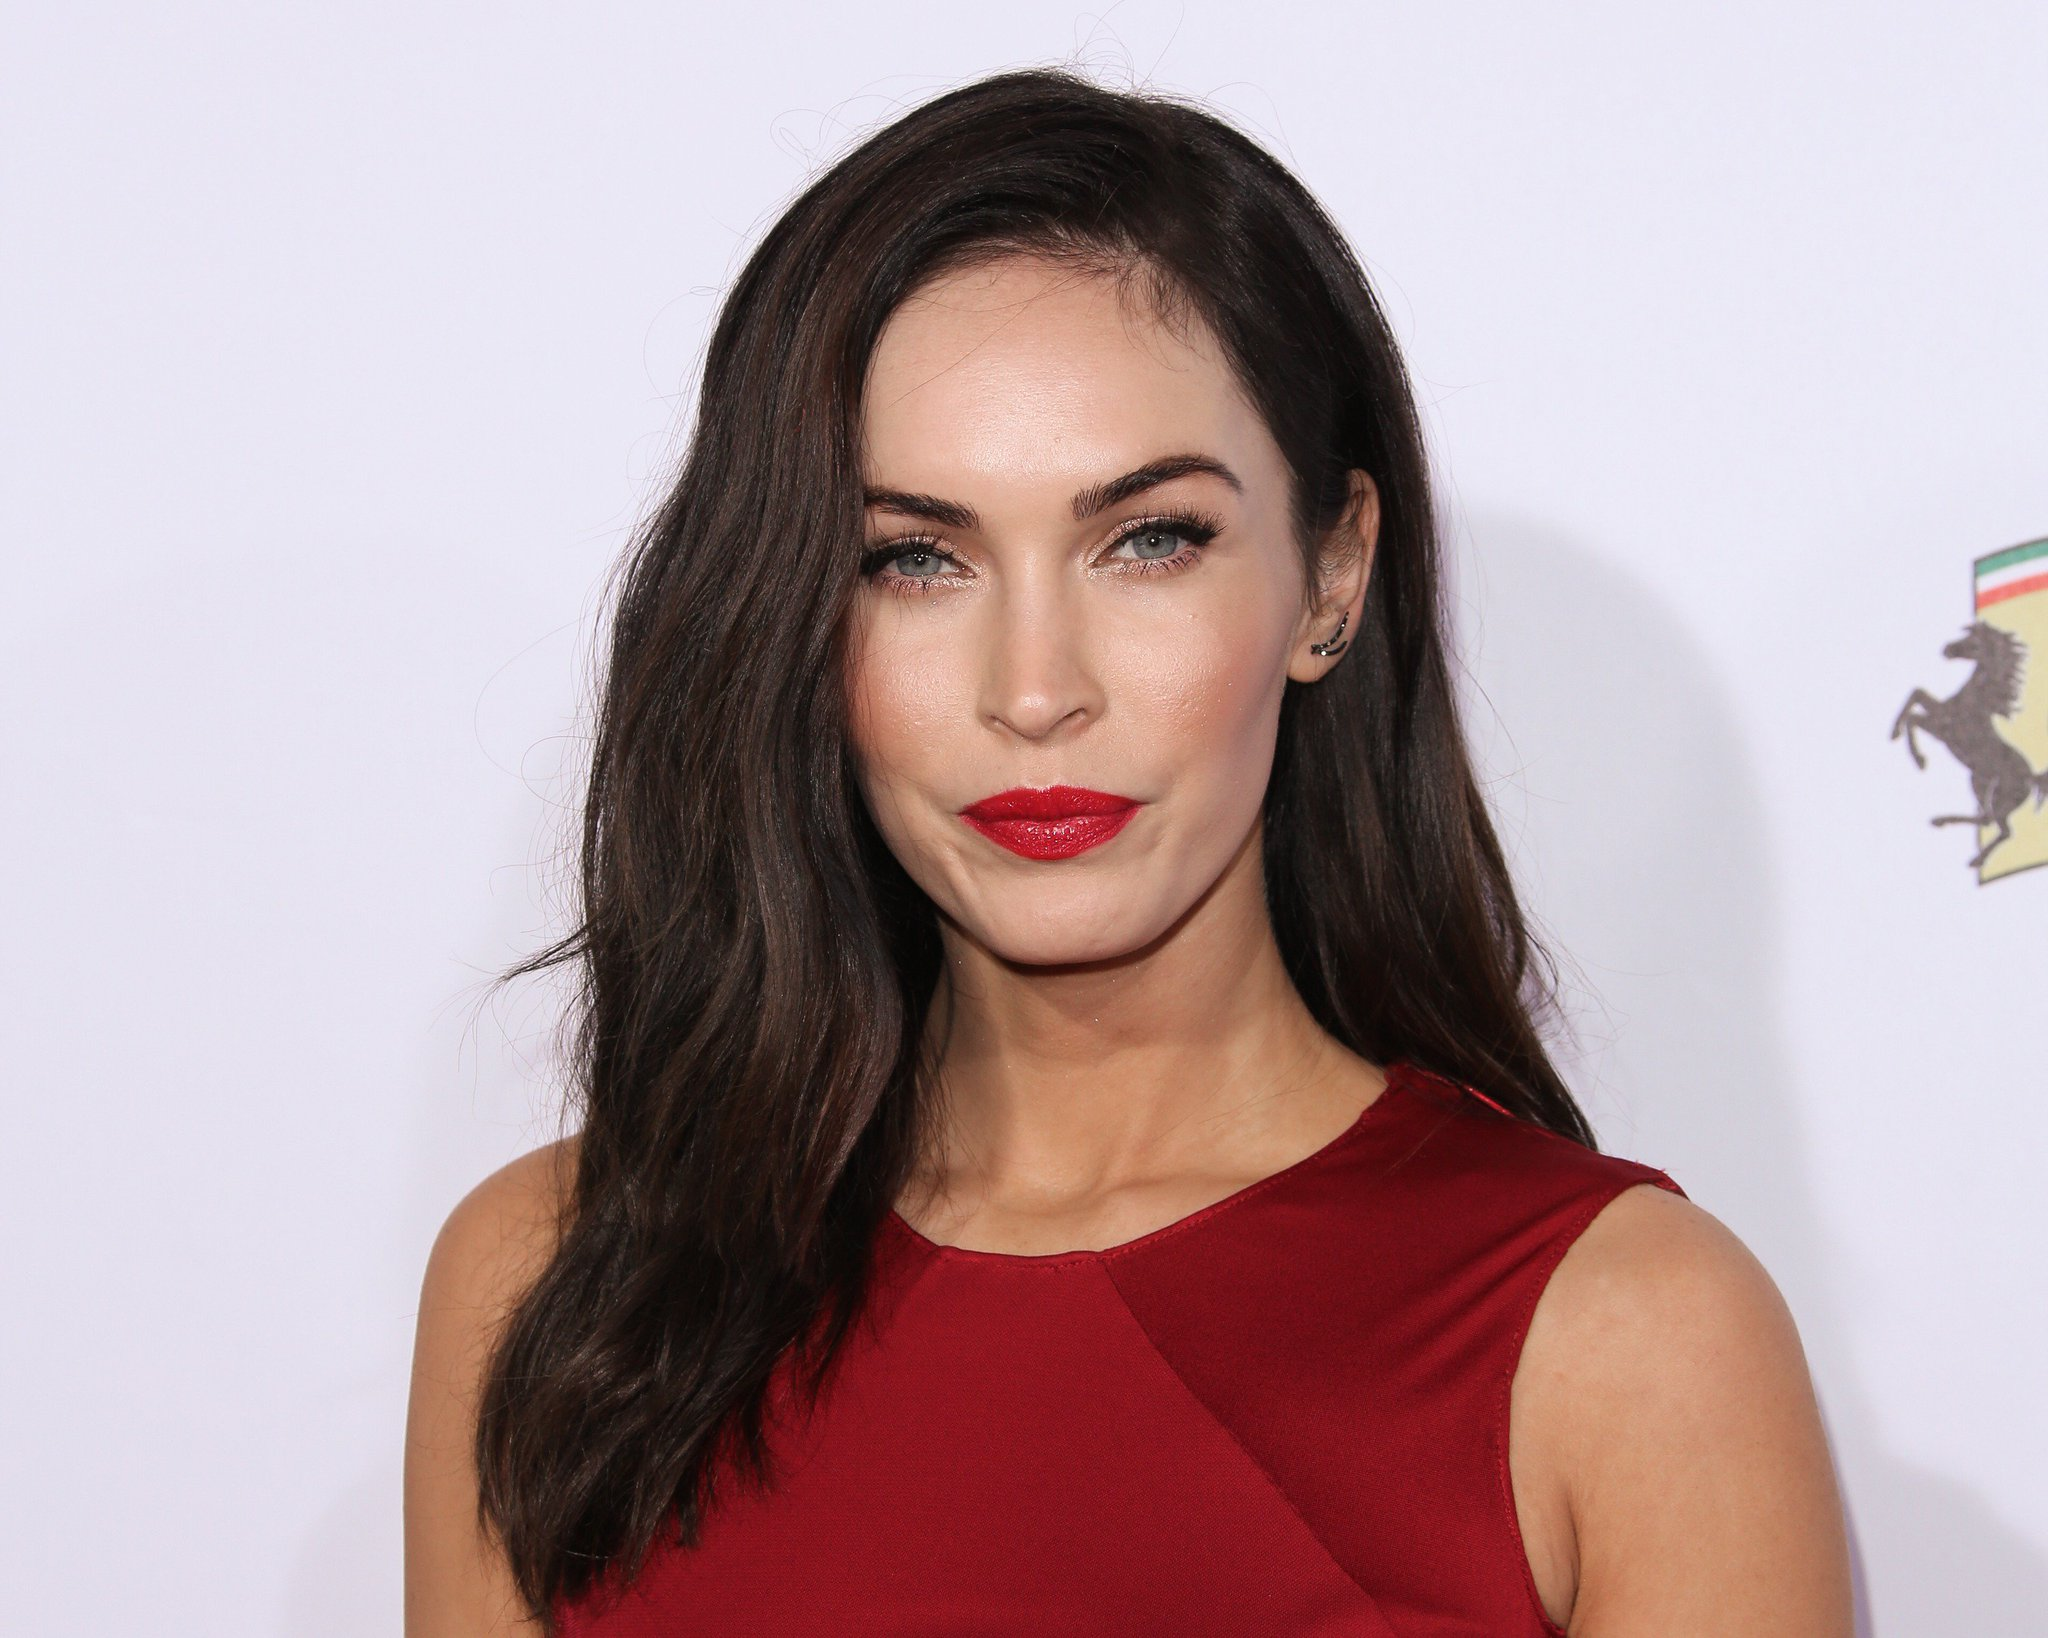 Birthday Wishes to Megan Fox, Pierce Brosnan, Thomas Brodie-Sangster and Miles Heizer.  Happy Birthday!